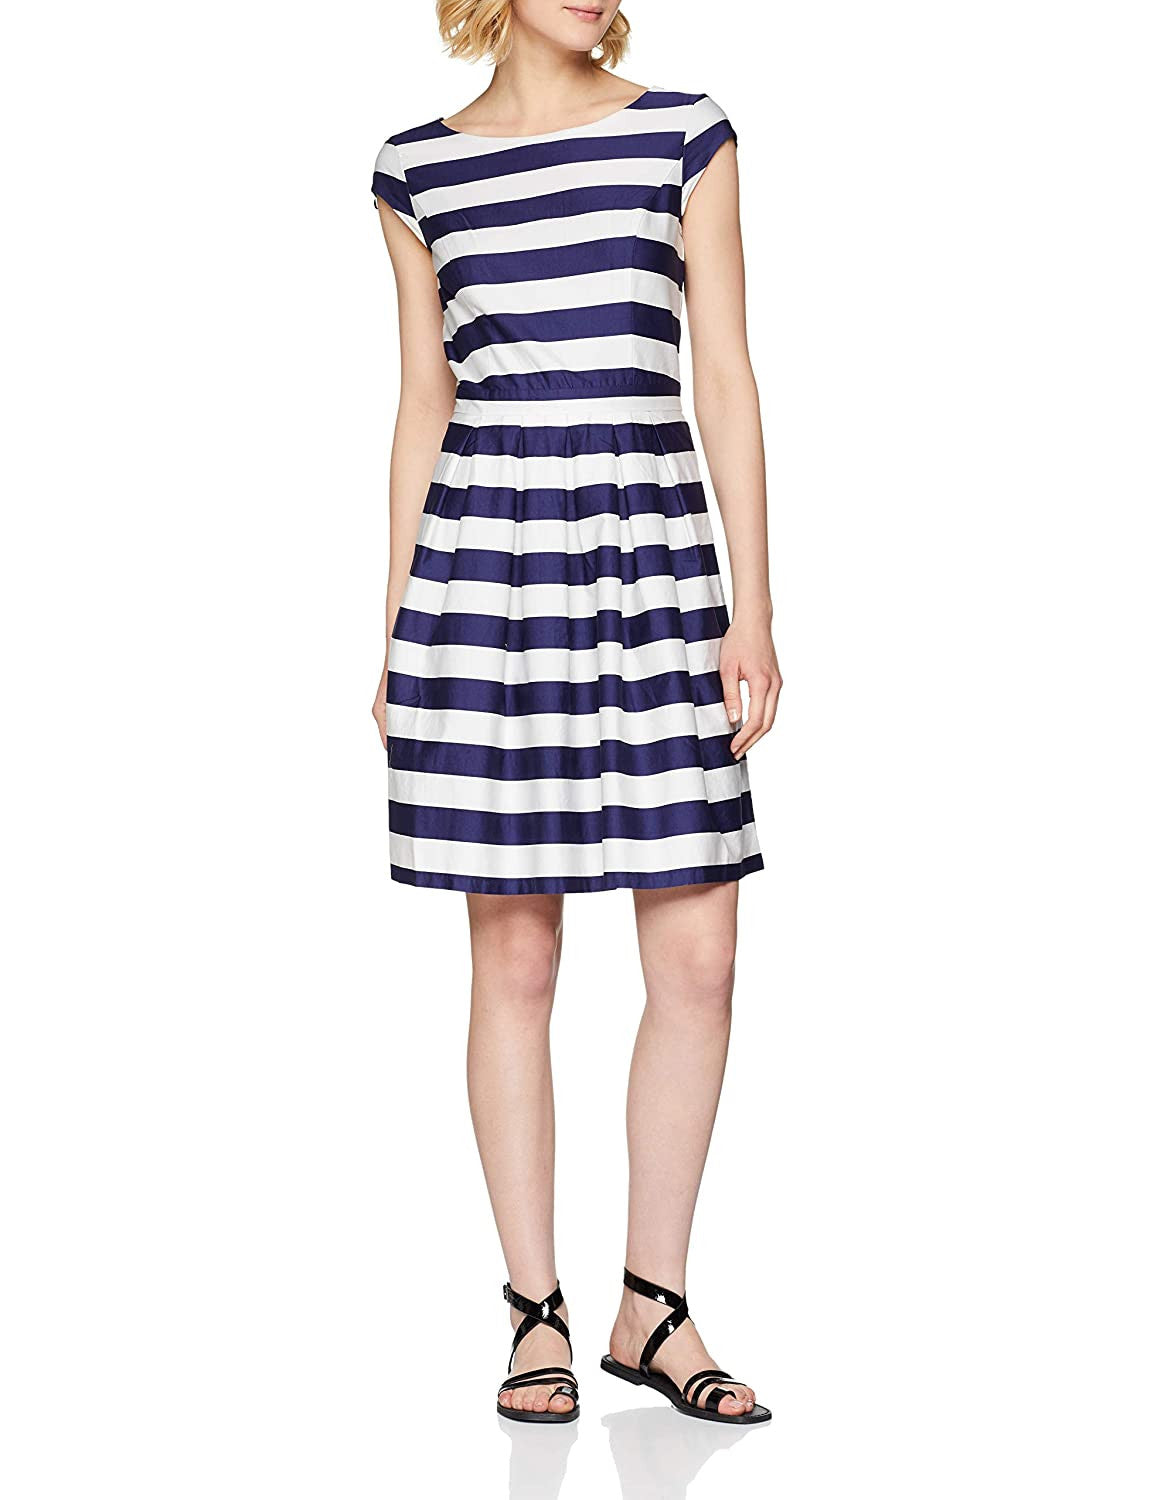 Dress with Stripes | Navy Stripes